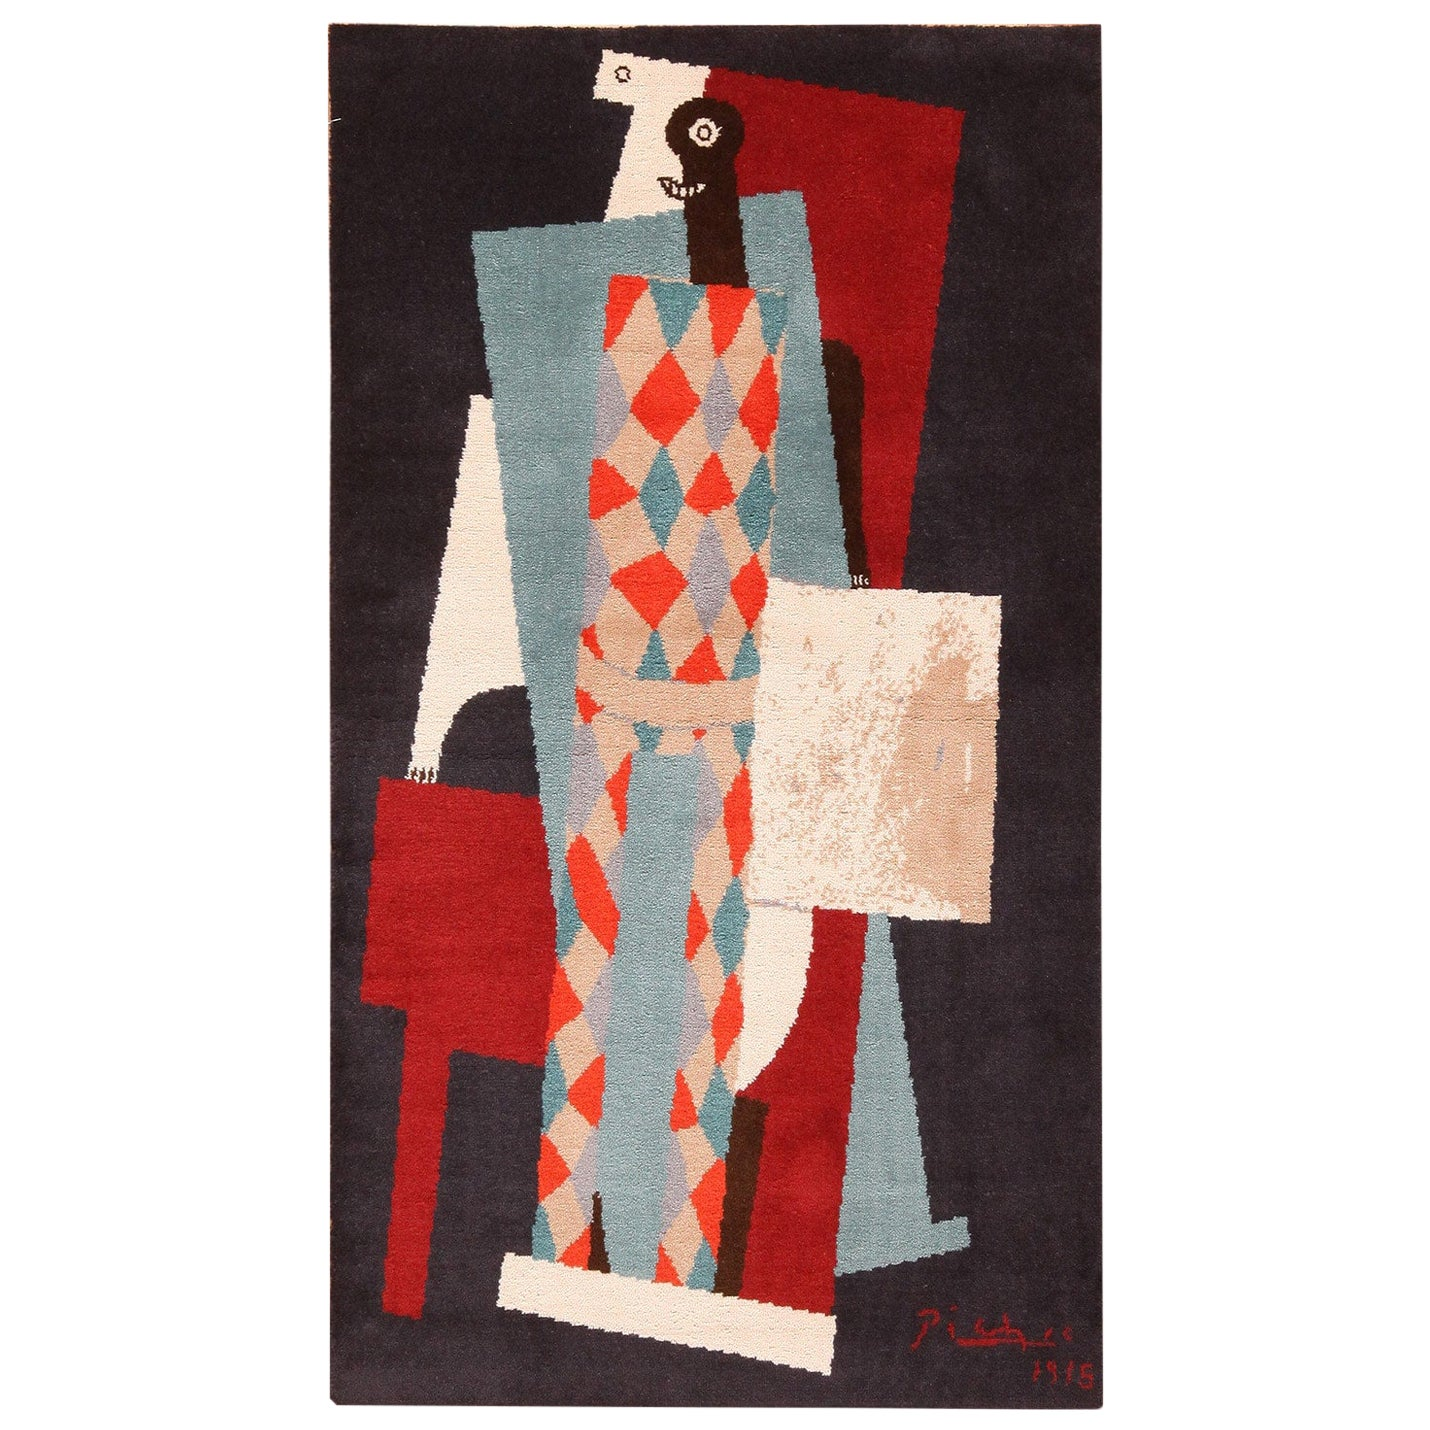 After Picasso Art Rug Vintage Scandinavian. Size: 3 ft 4 in x 5 ft 8 in